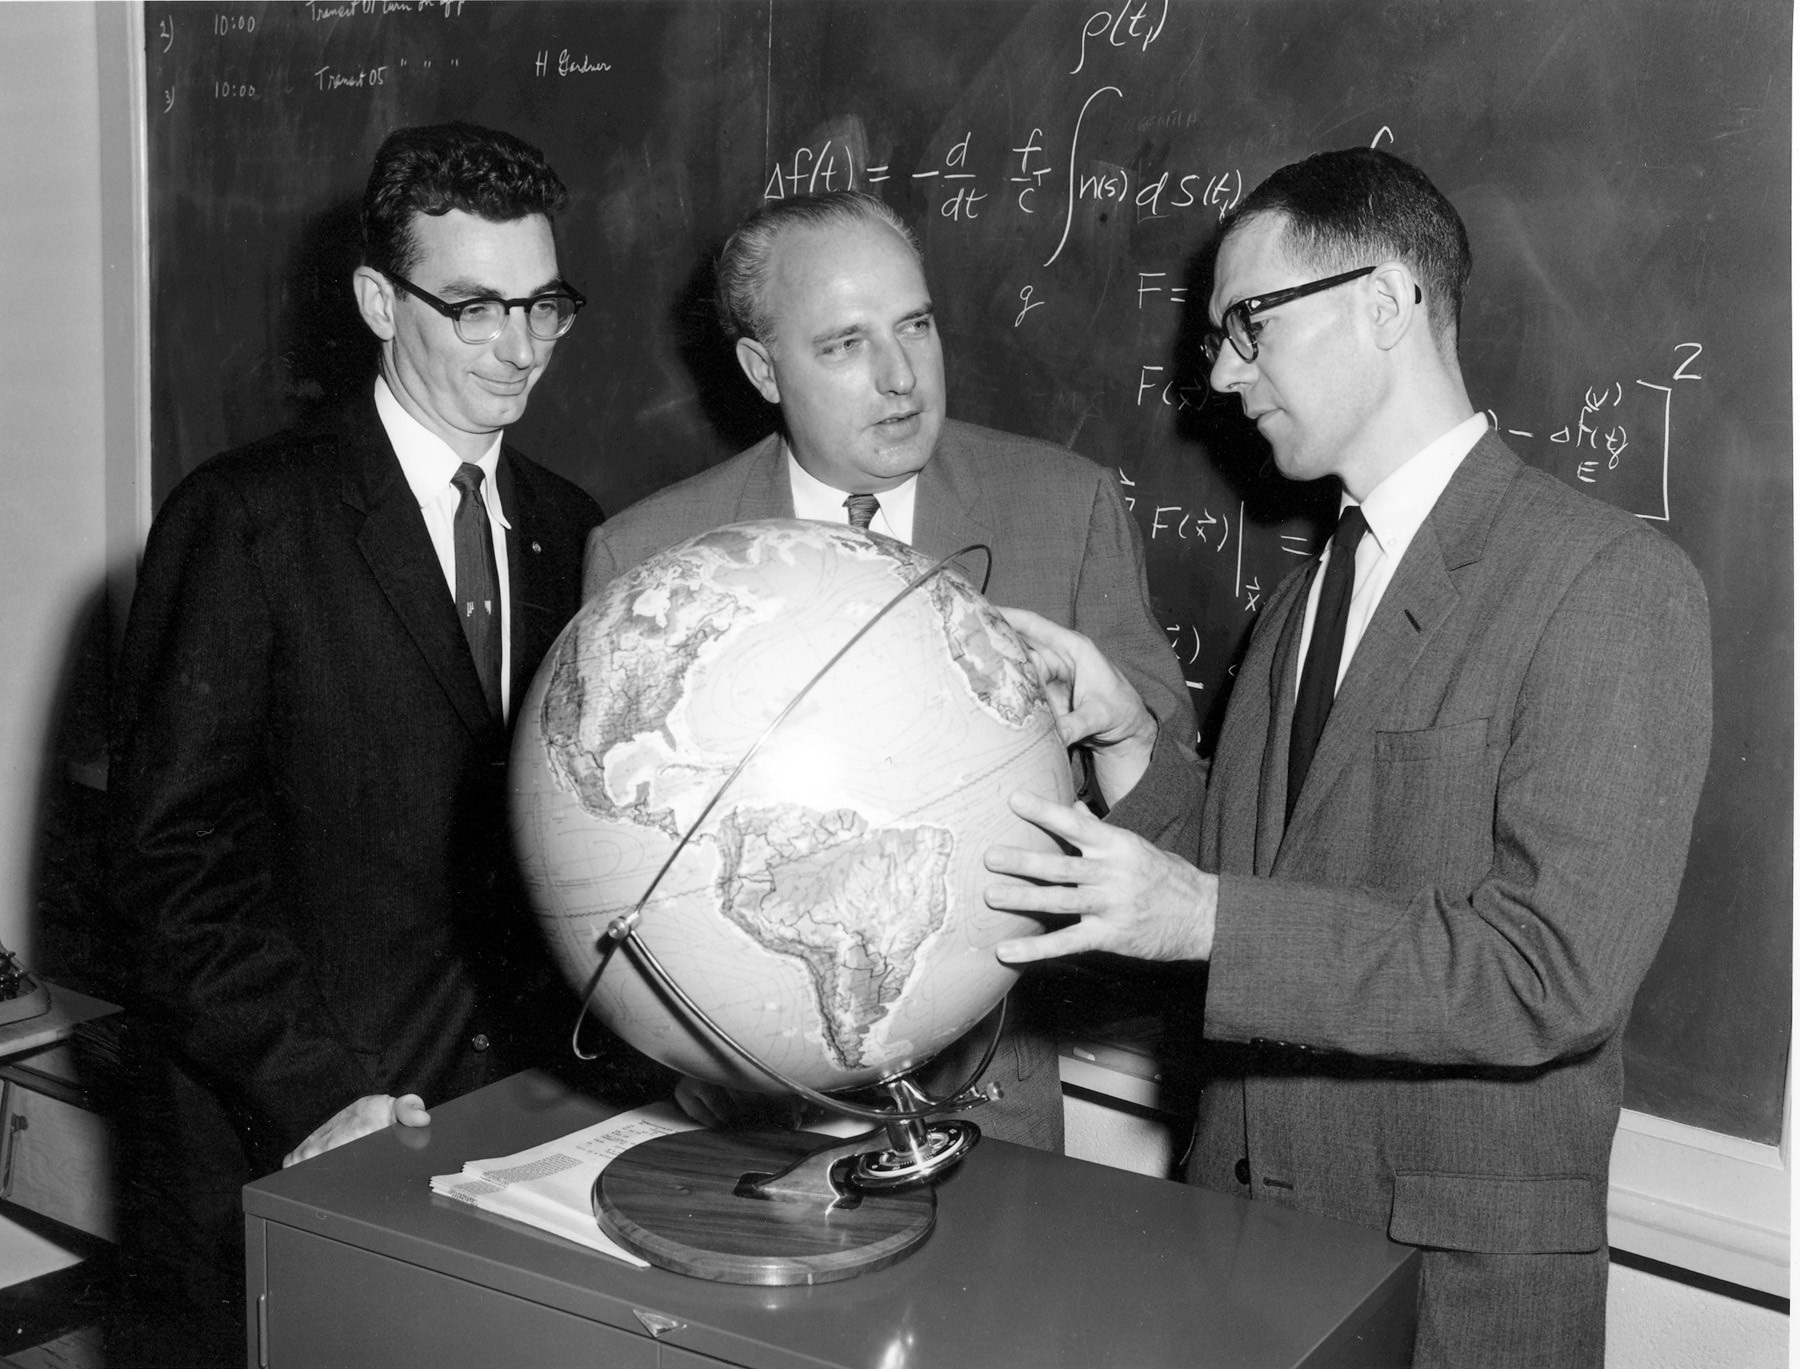 "Mathematician Bill Guier (l) and physicist George Weiffenbach (r), told APL Research Center director Frank T. McClure (c), about their success using Doppler tracking for satellites. ""McClure's brain started going into fast forward,"" remembered John Dassoulas. ""Knowing the navigational challenges the U.S. Navy faced, McClure said, 'Well, if you can find out where the satellite is, you ought to be able to turn that problem upside down and find out where you are.'"" (Credit: Bradford W. Parkinson and Stephen T. Powers)"